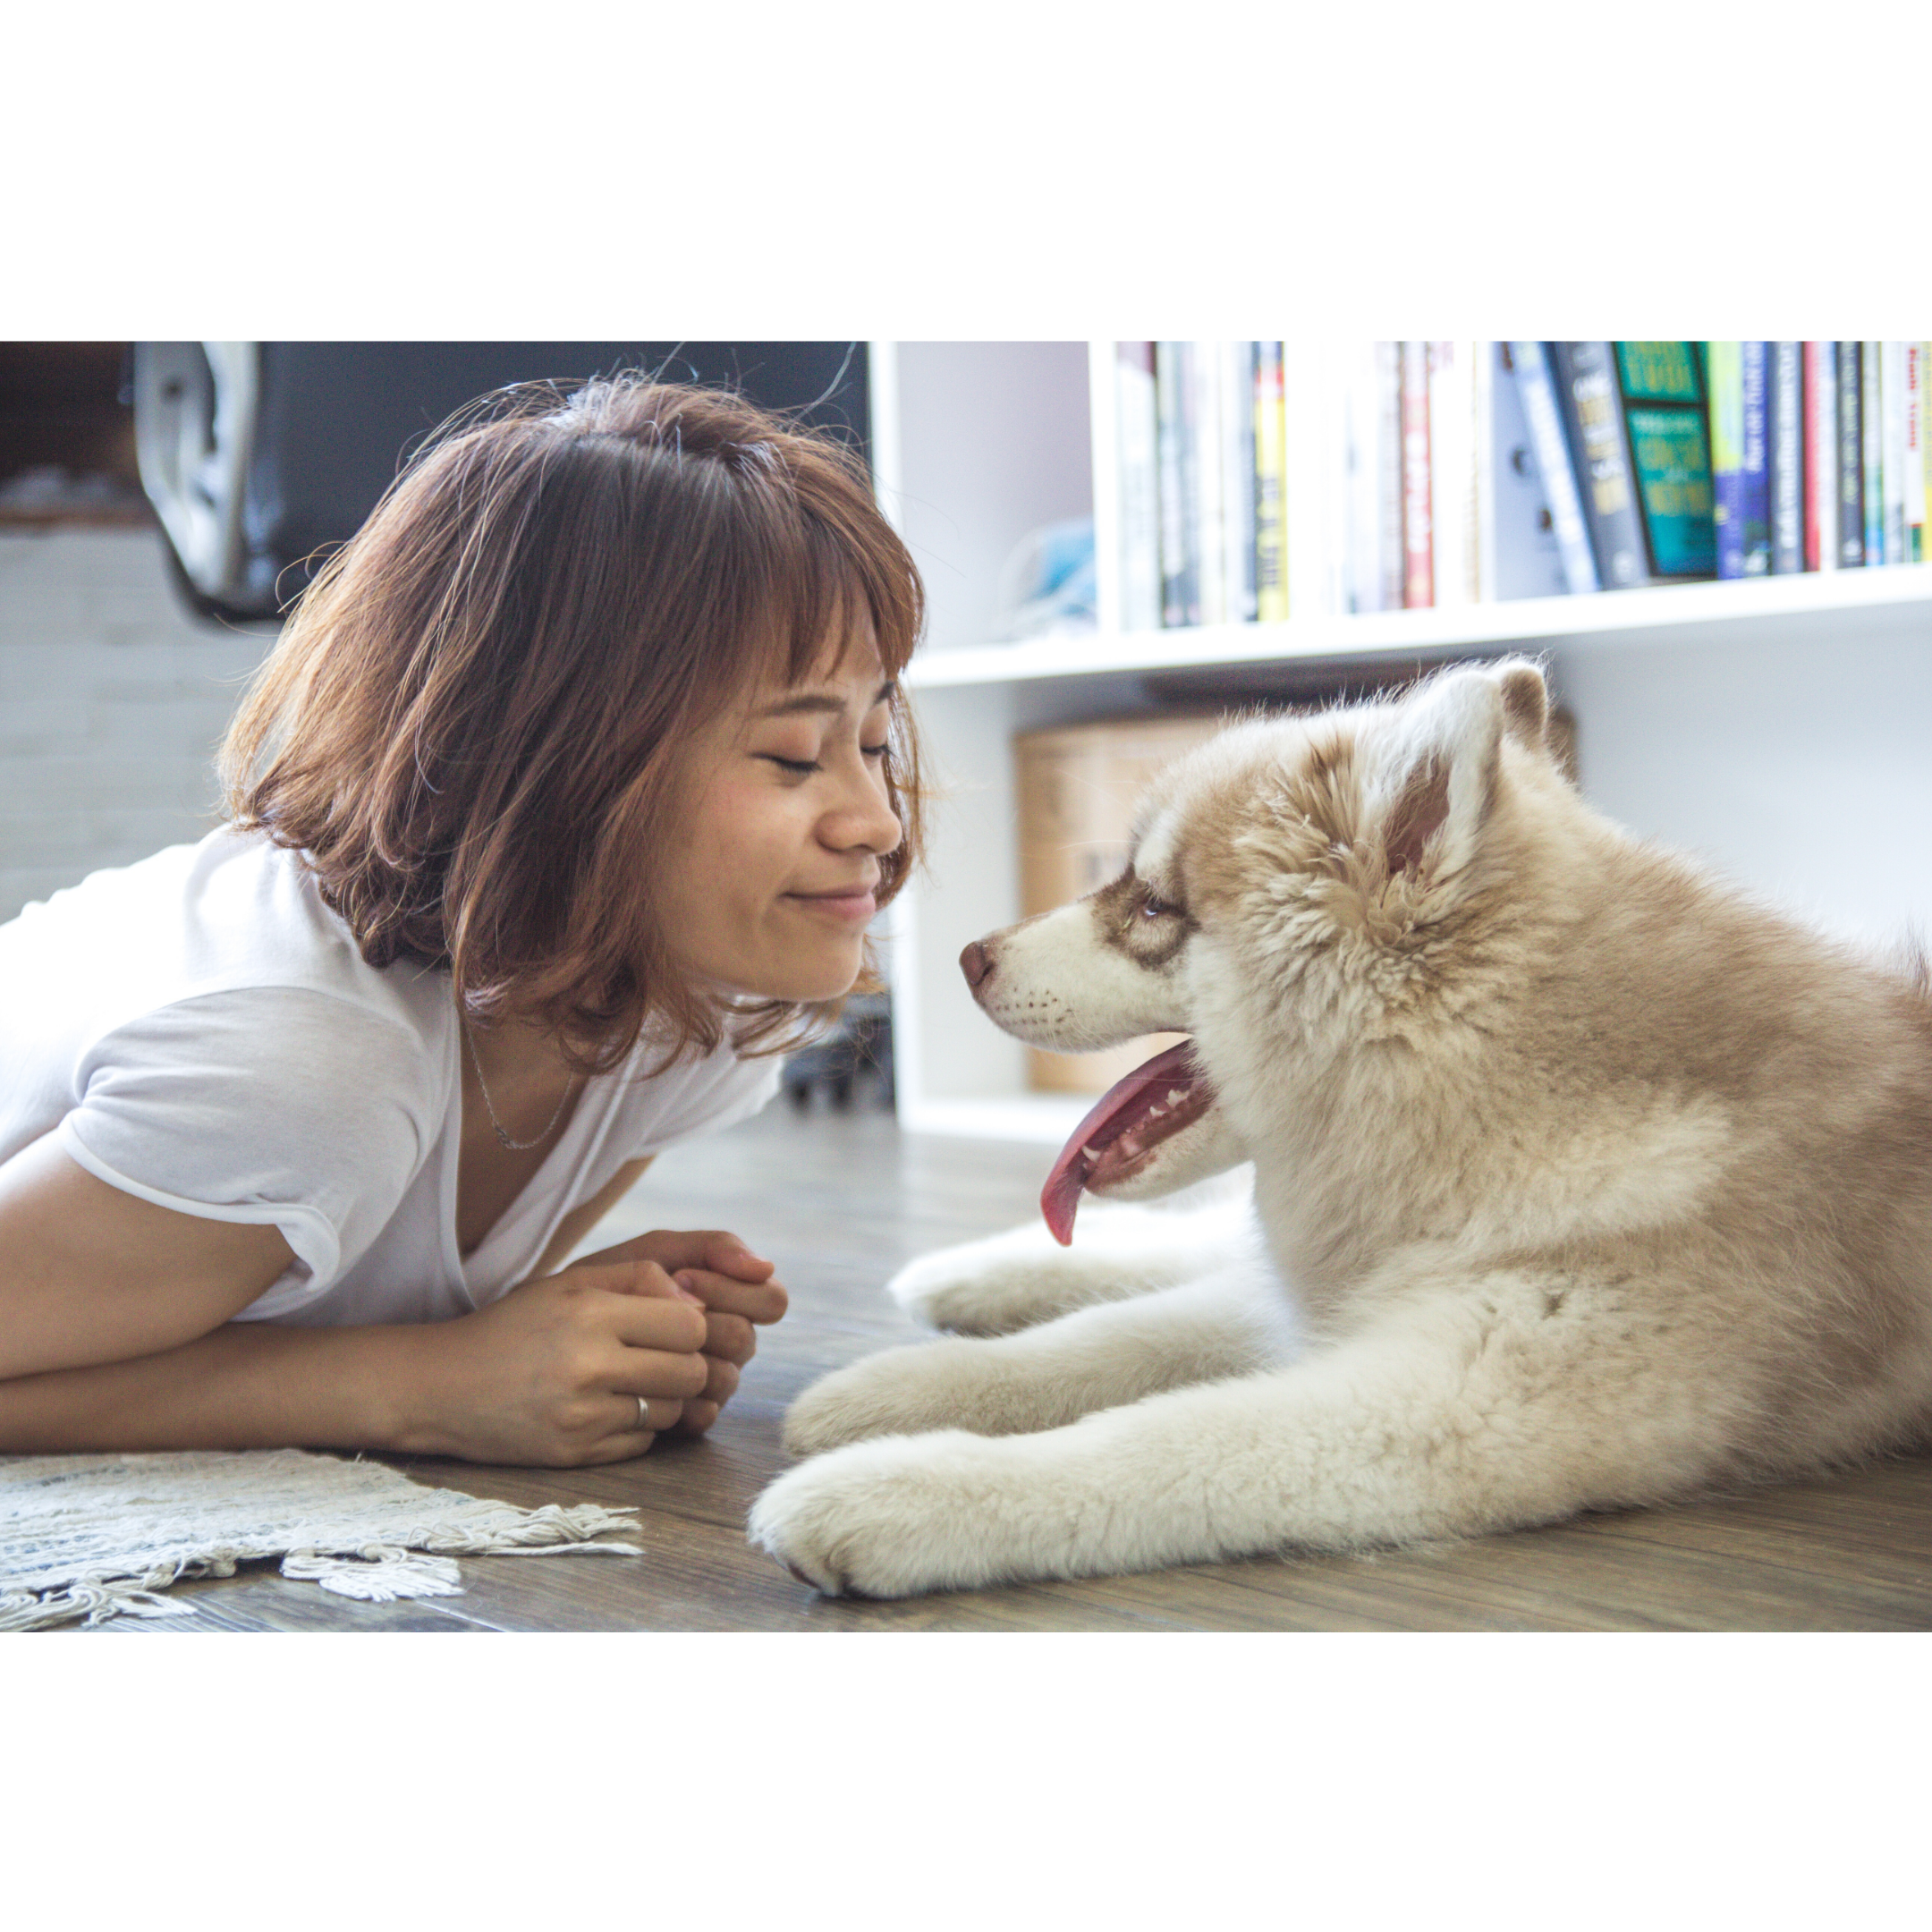 Paws everything you're doing and get your furry friends the quarantine supplies